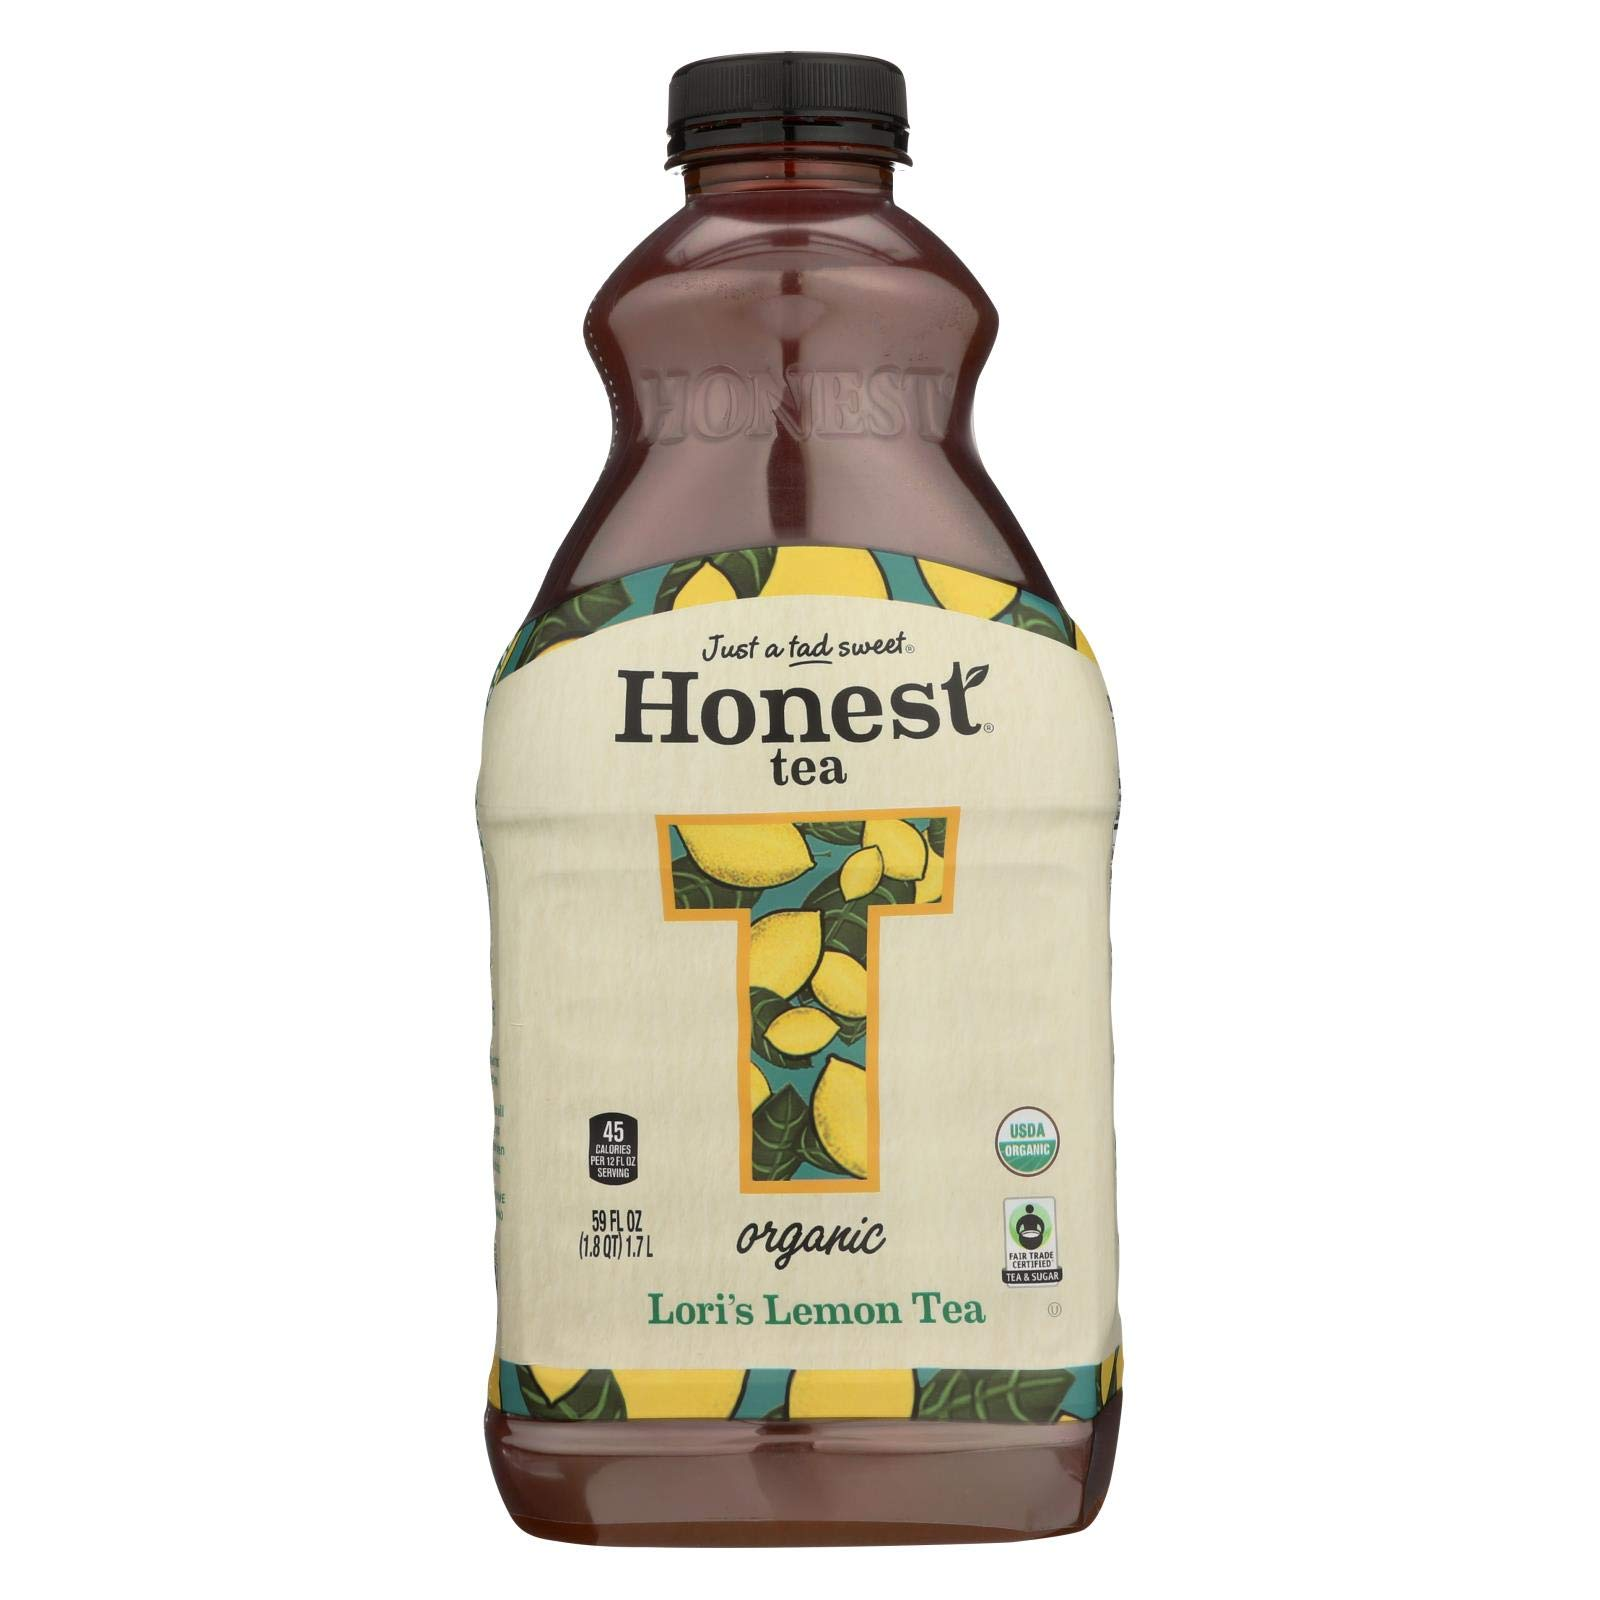 Honest Tea Loris Lemon Tea, 59 Fluid Ounce - 8 per case. by Honest Tea